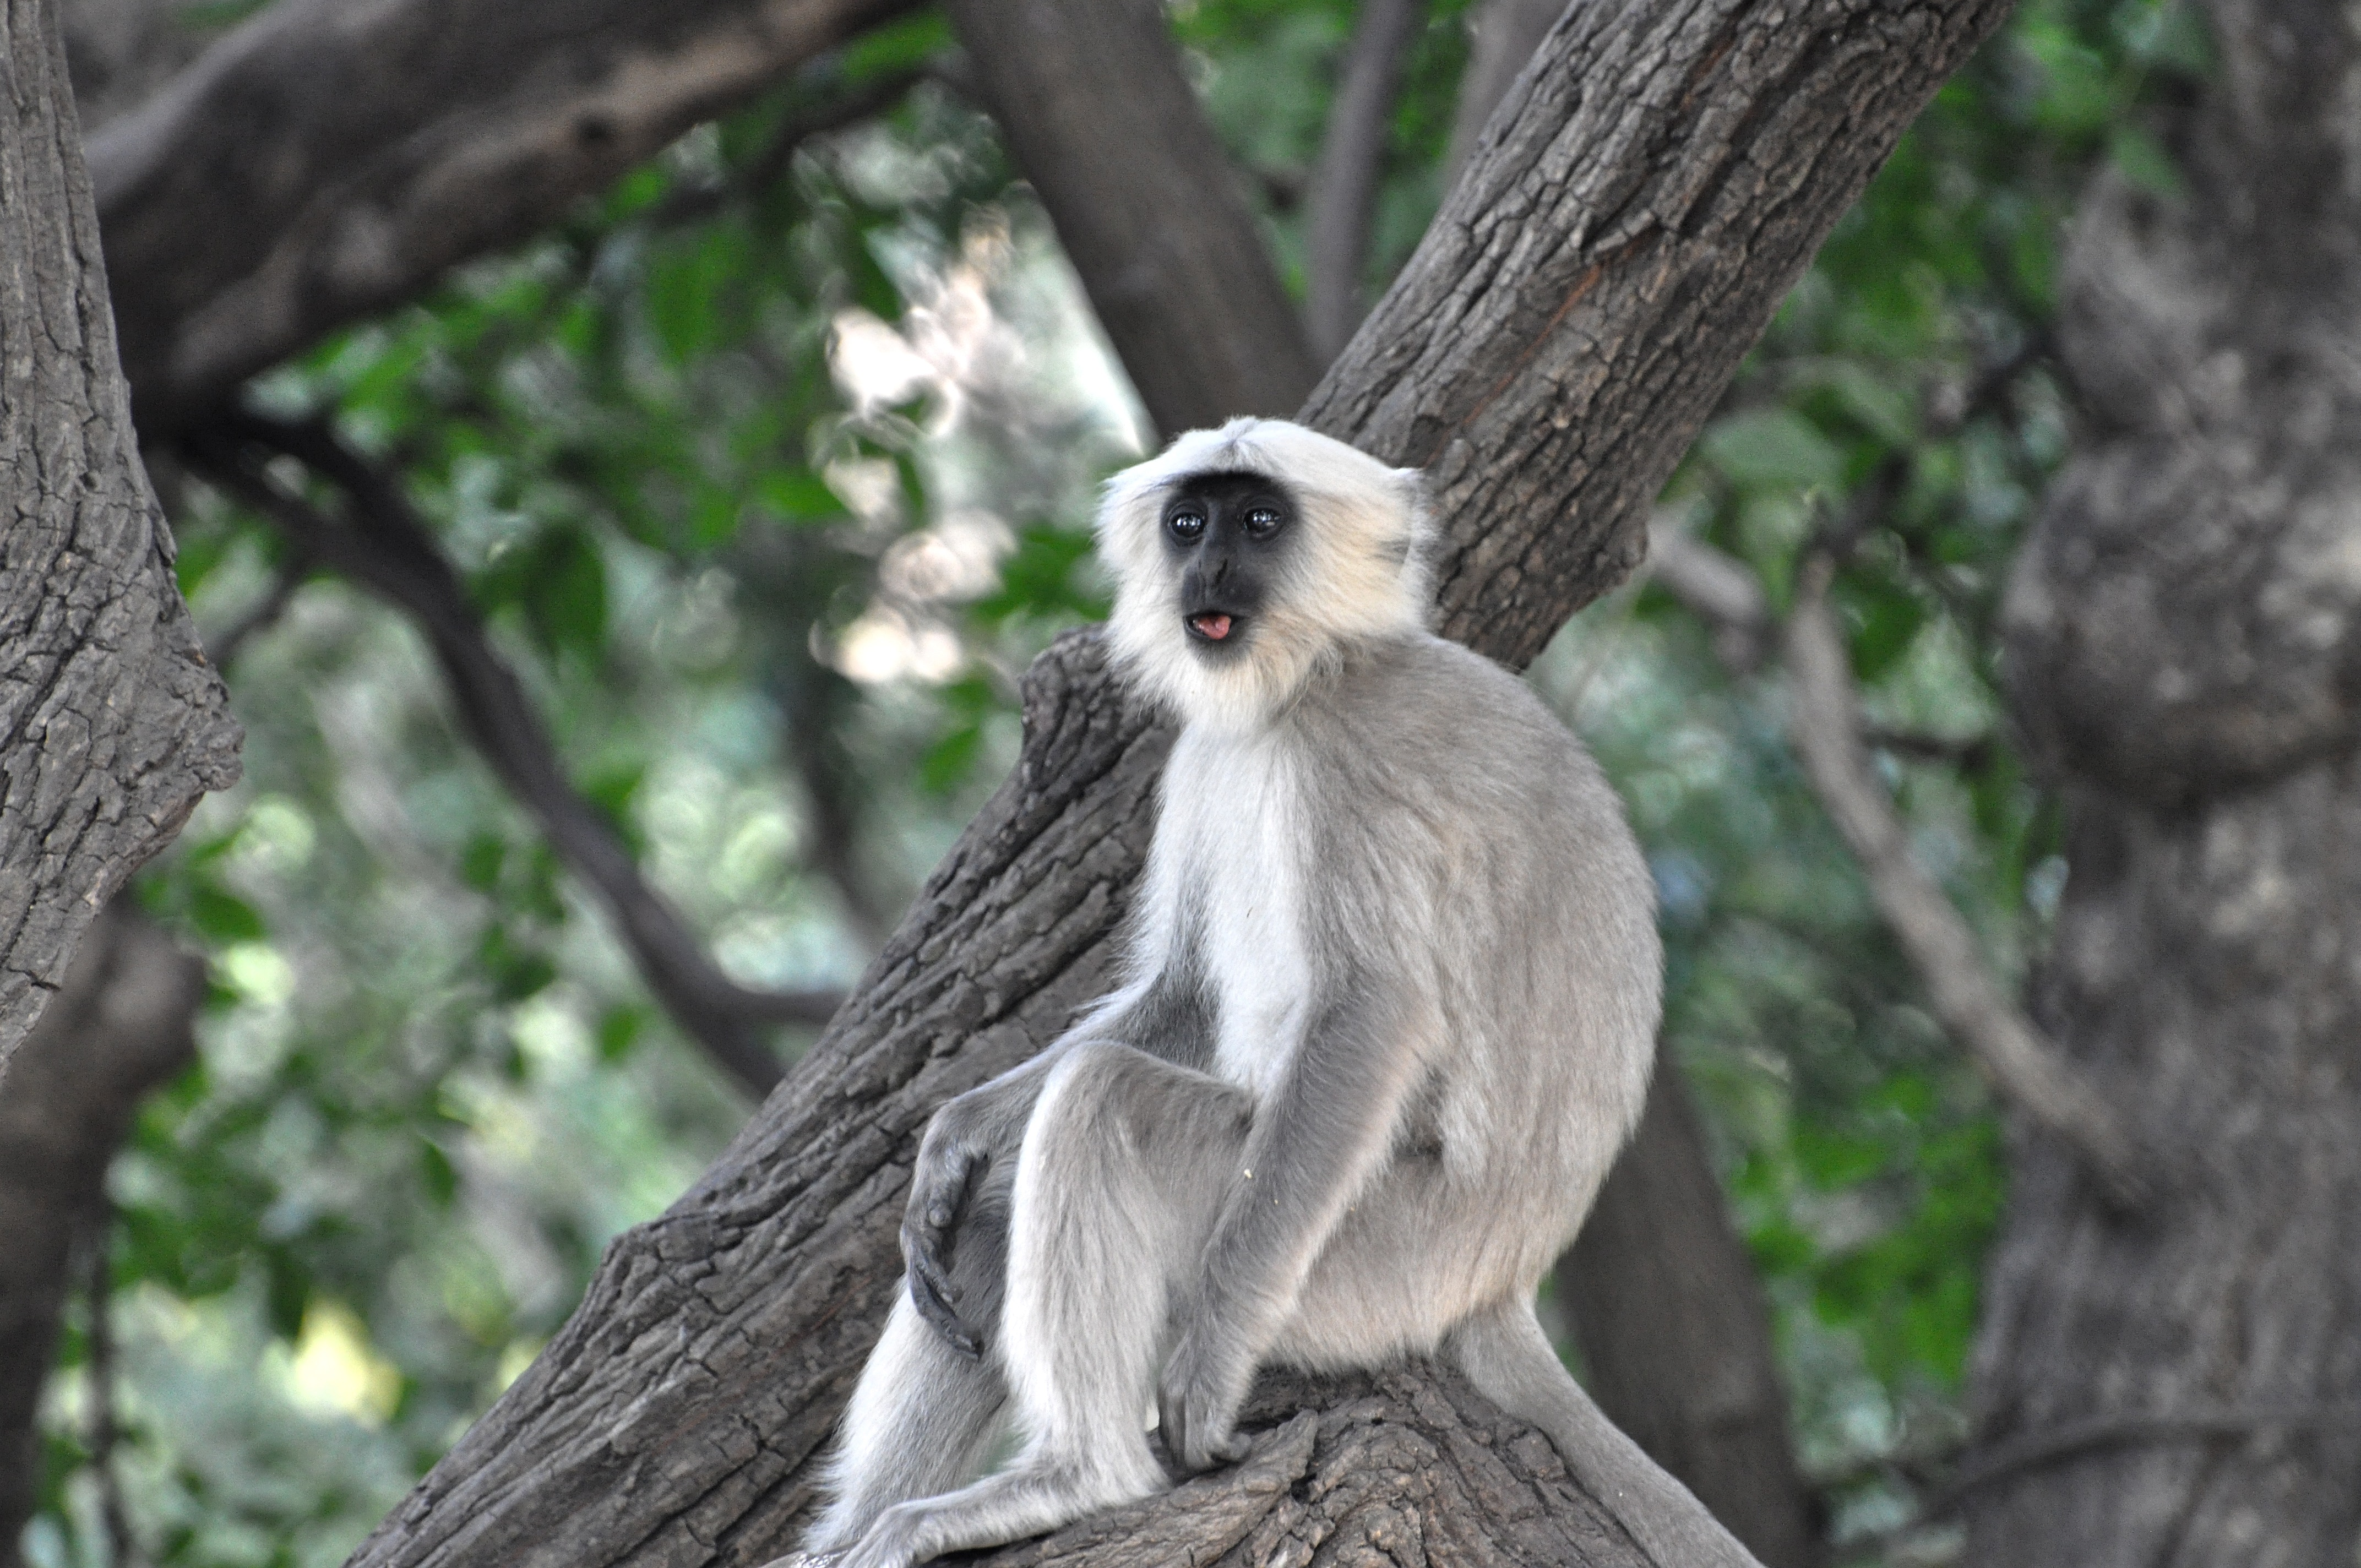 Grey and White Monkey on Tree Branch, Animal, Outdoors, Wood, Wildlife, HQ Photo